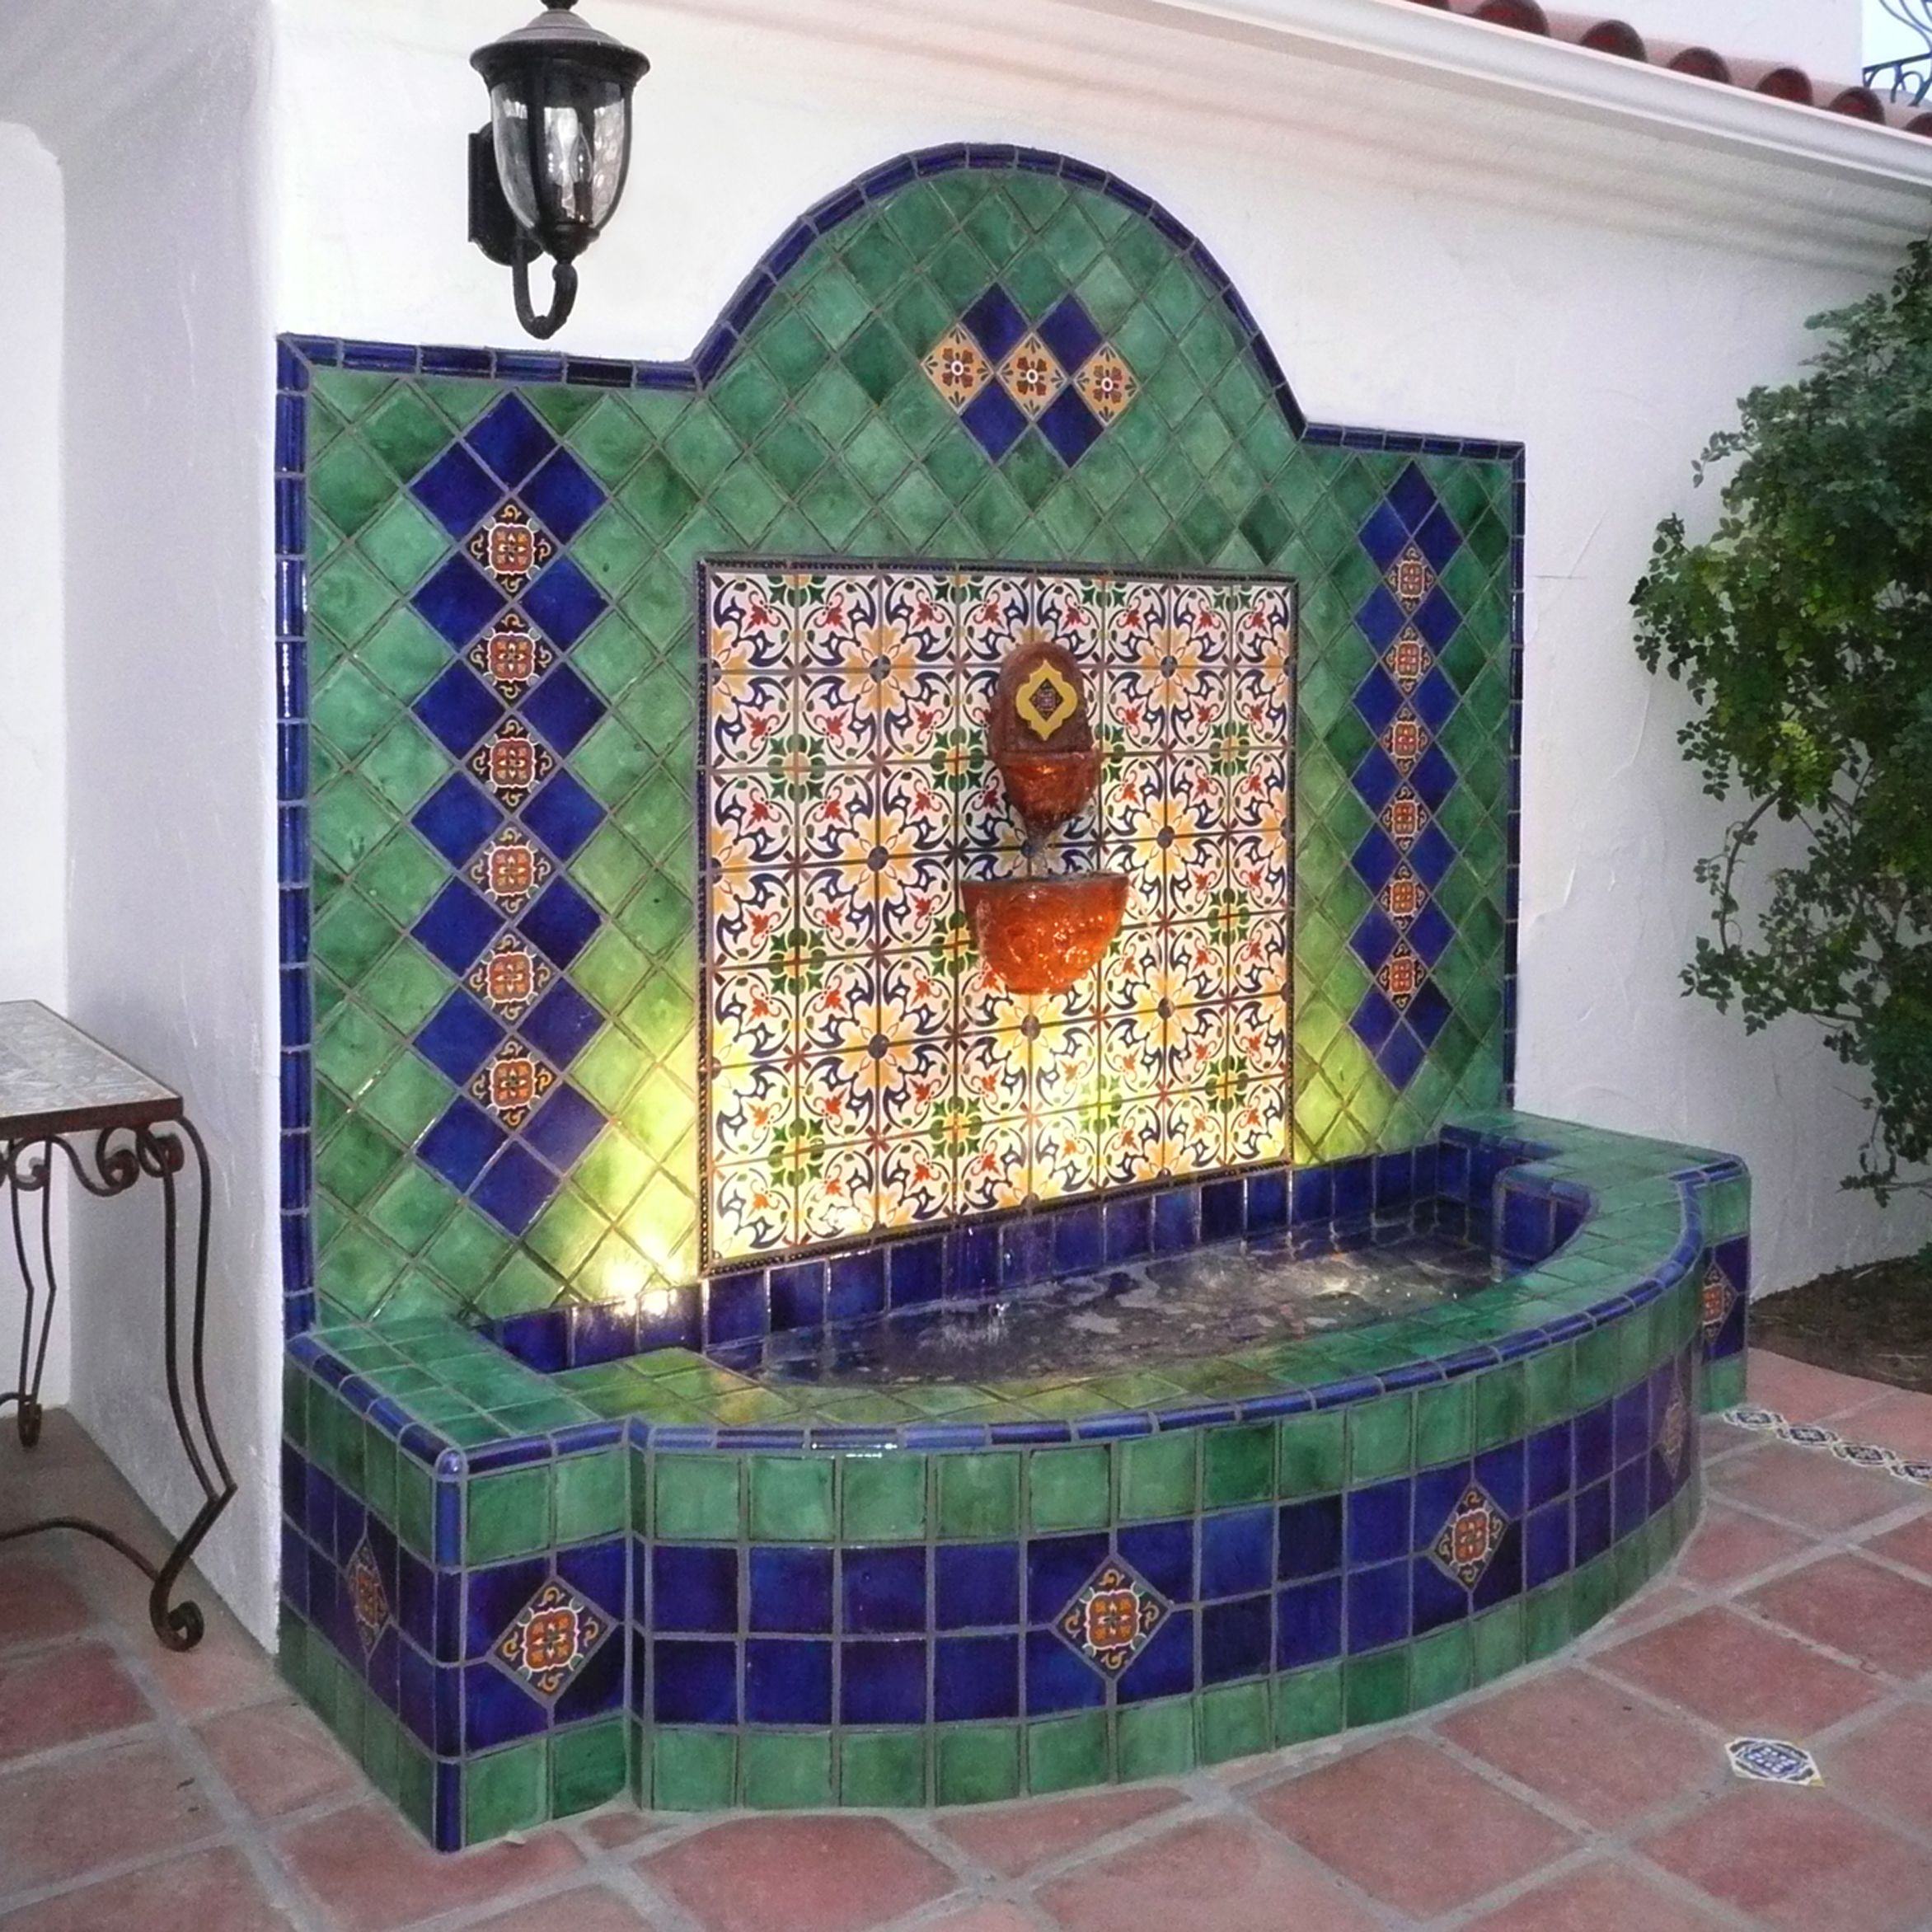 wall fountain with lights using mexican tiles